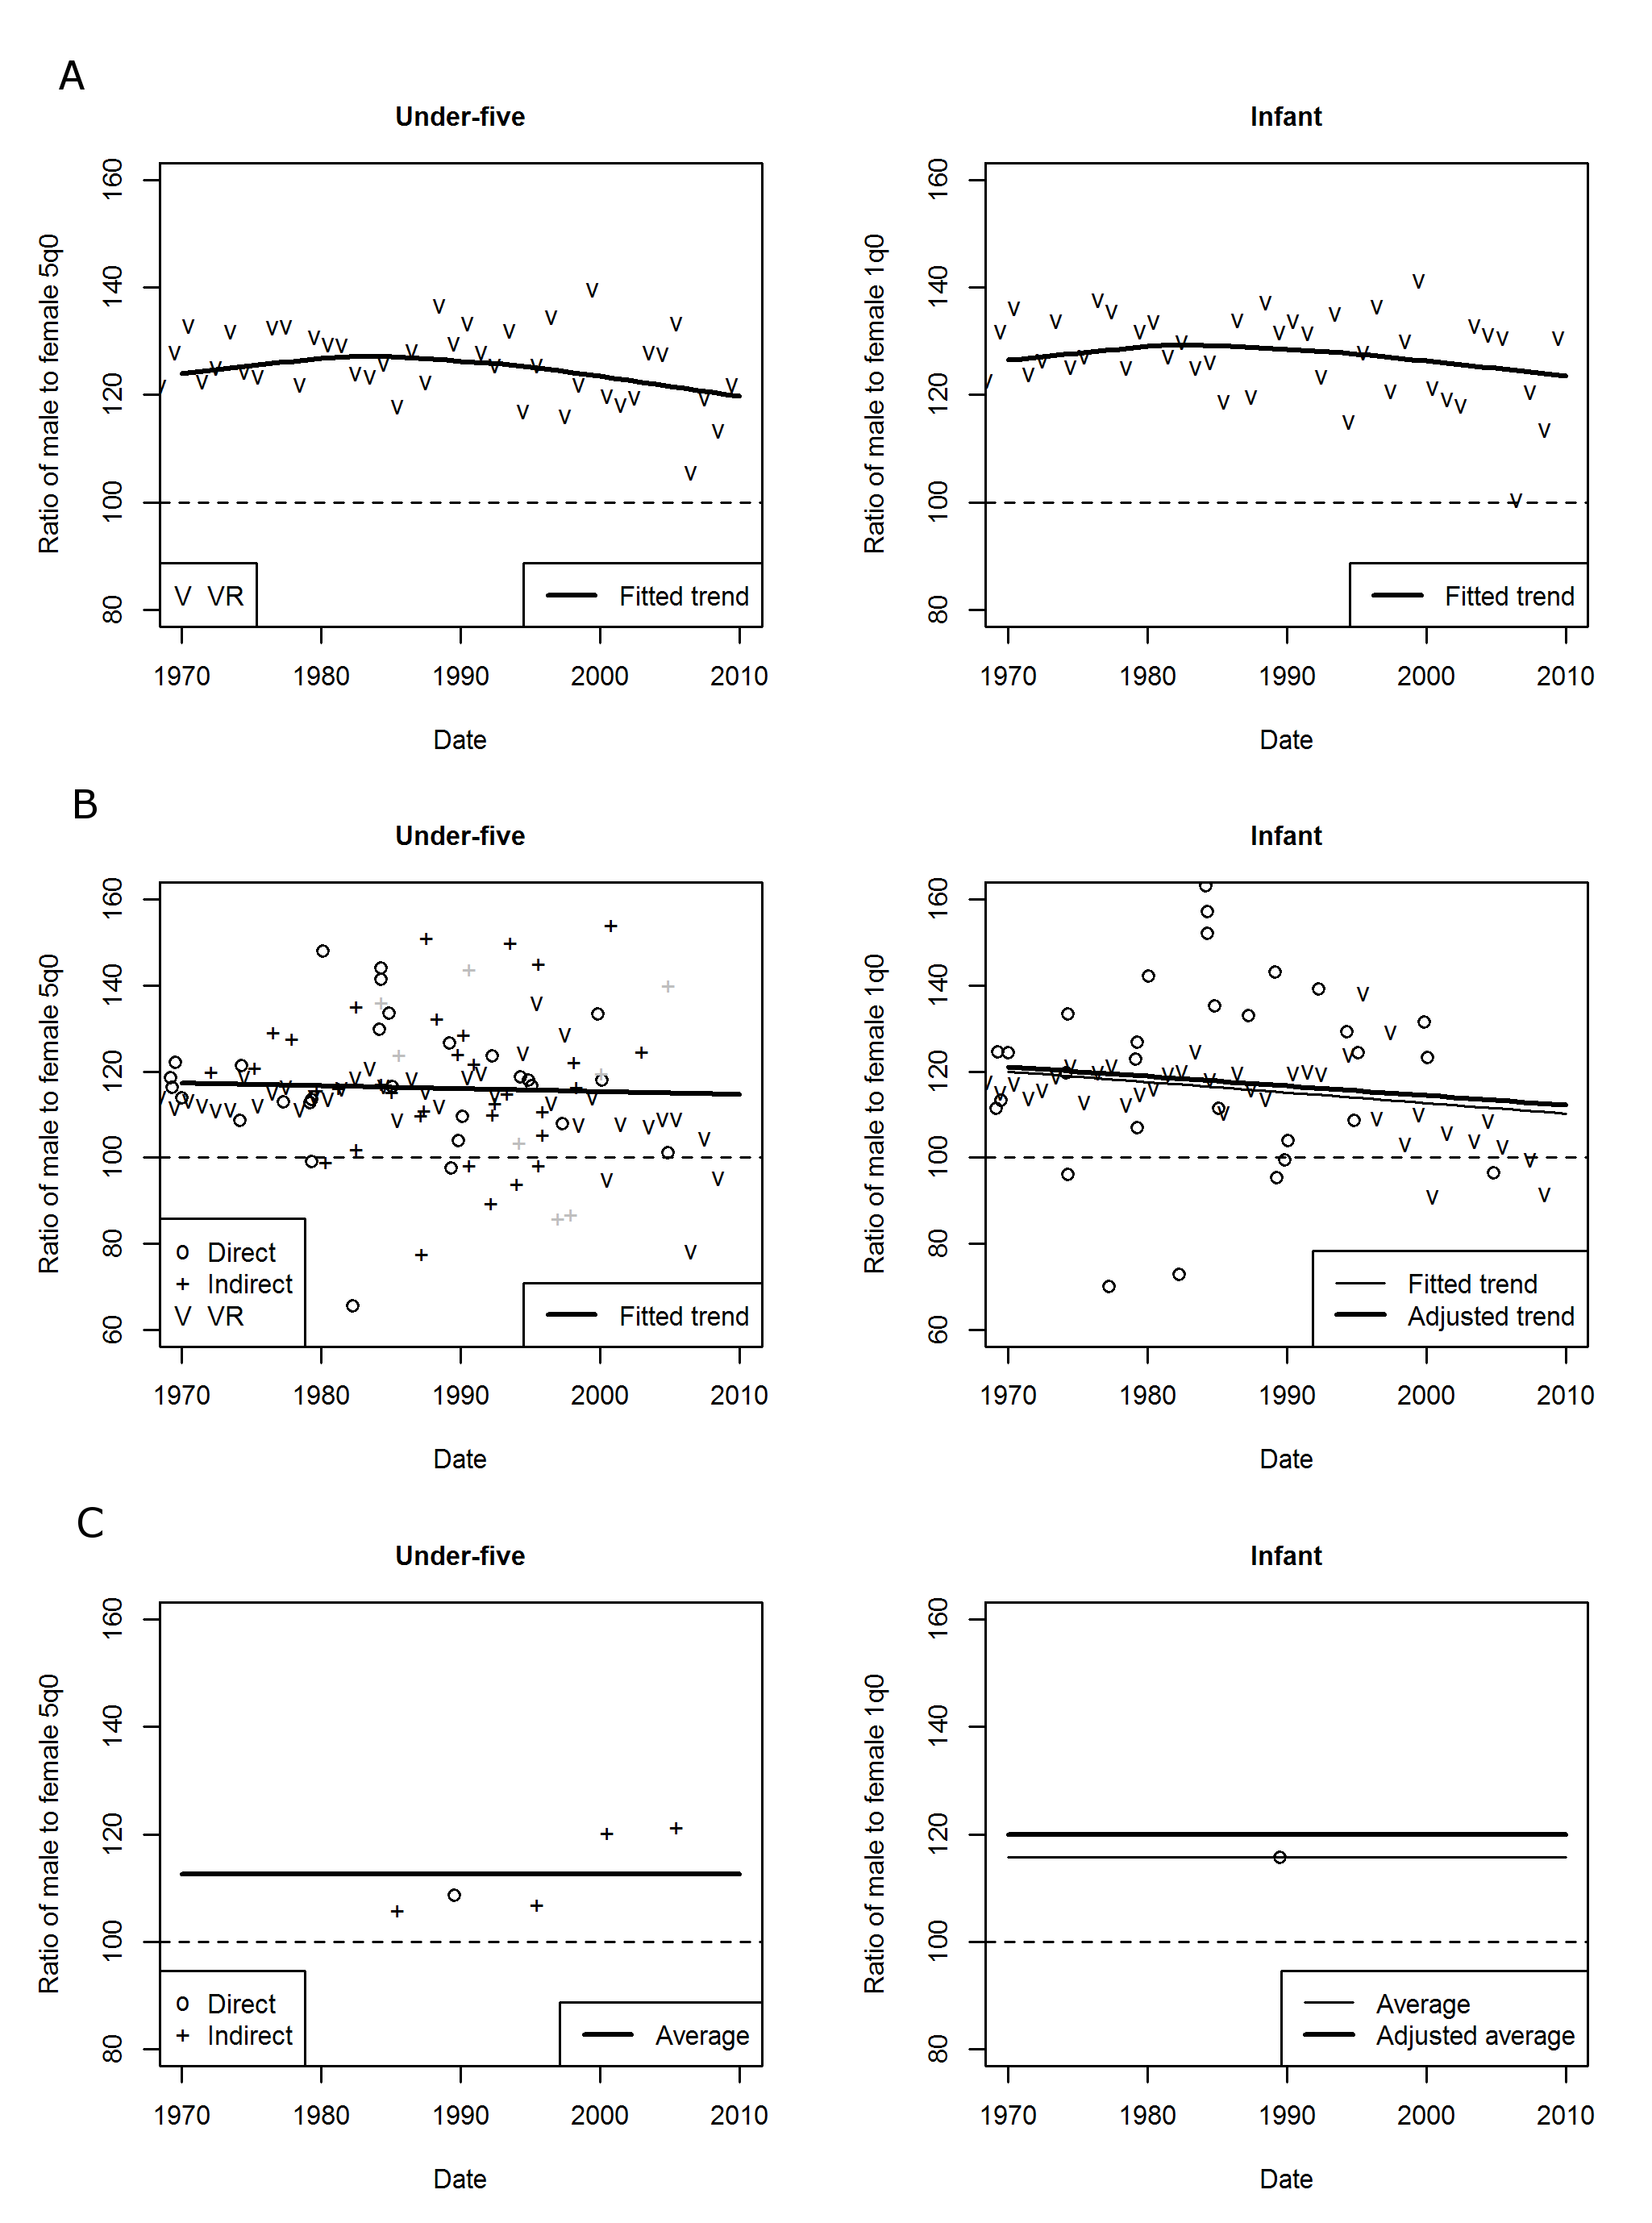 Examples of data and fits for sex ratios of under-five and infant mortality using different methods.